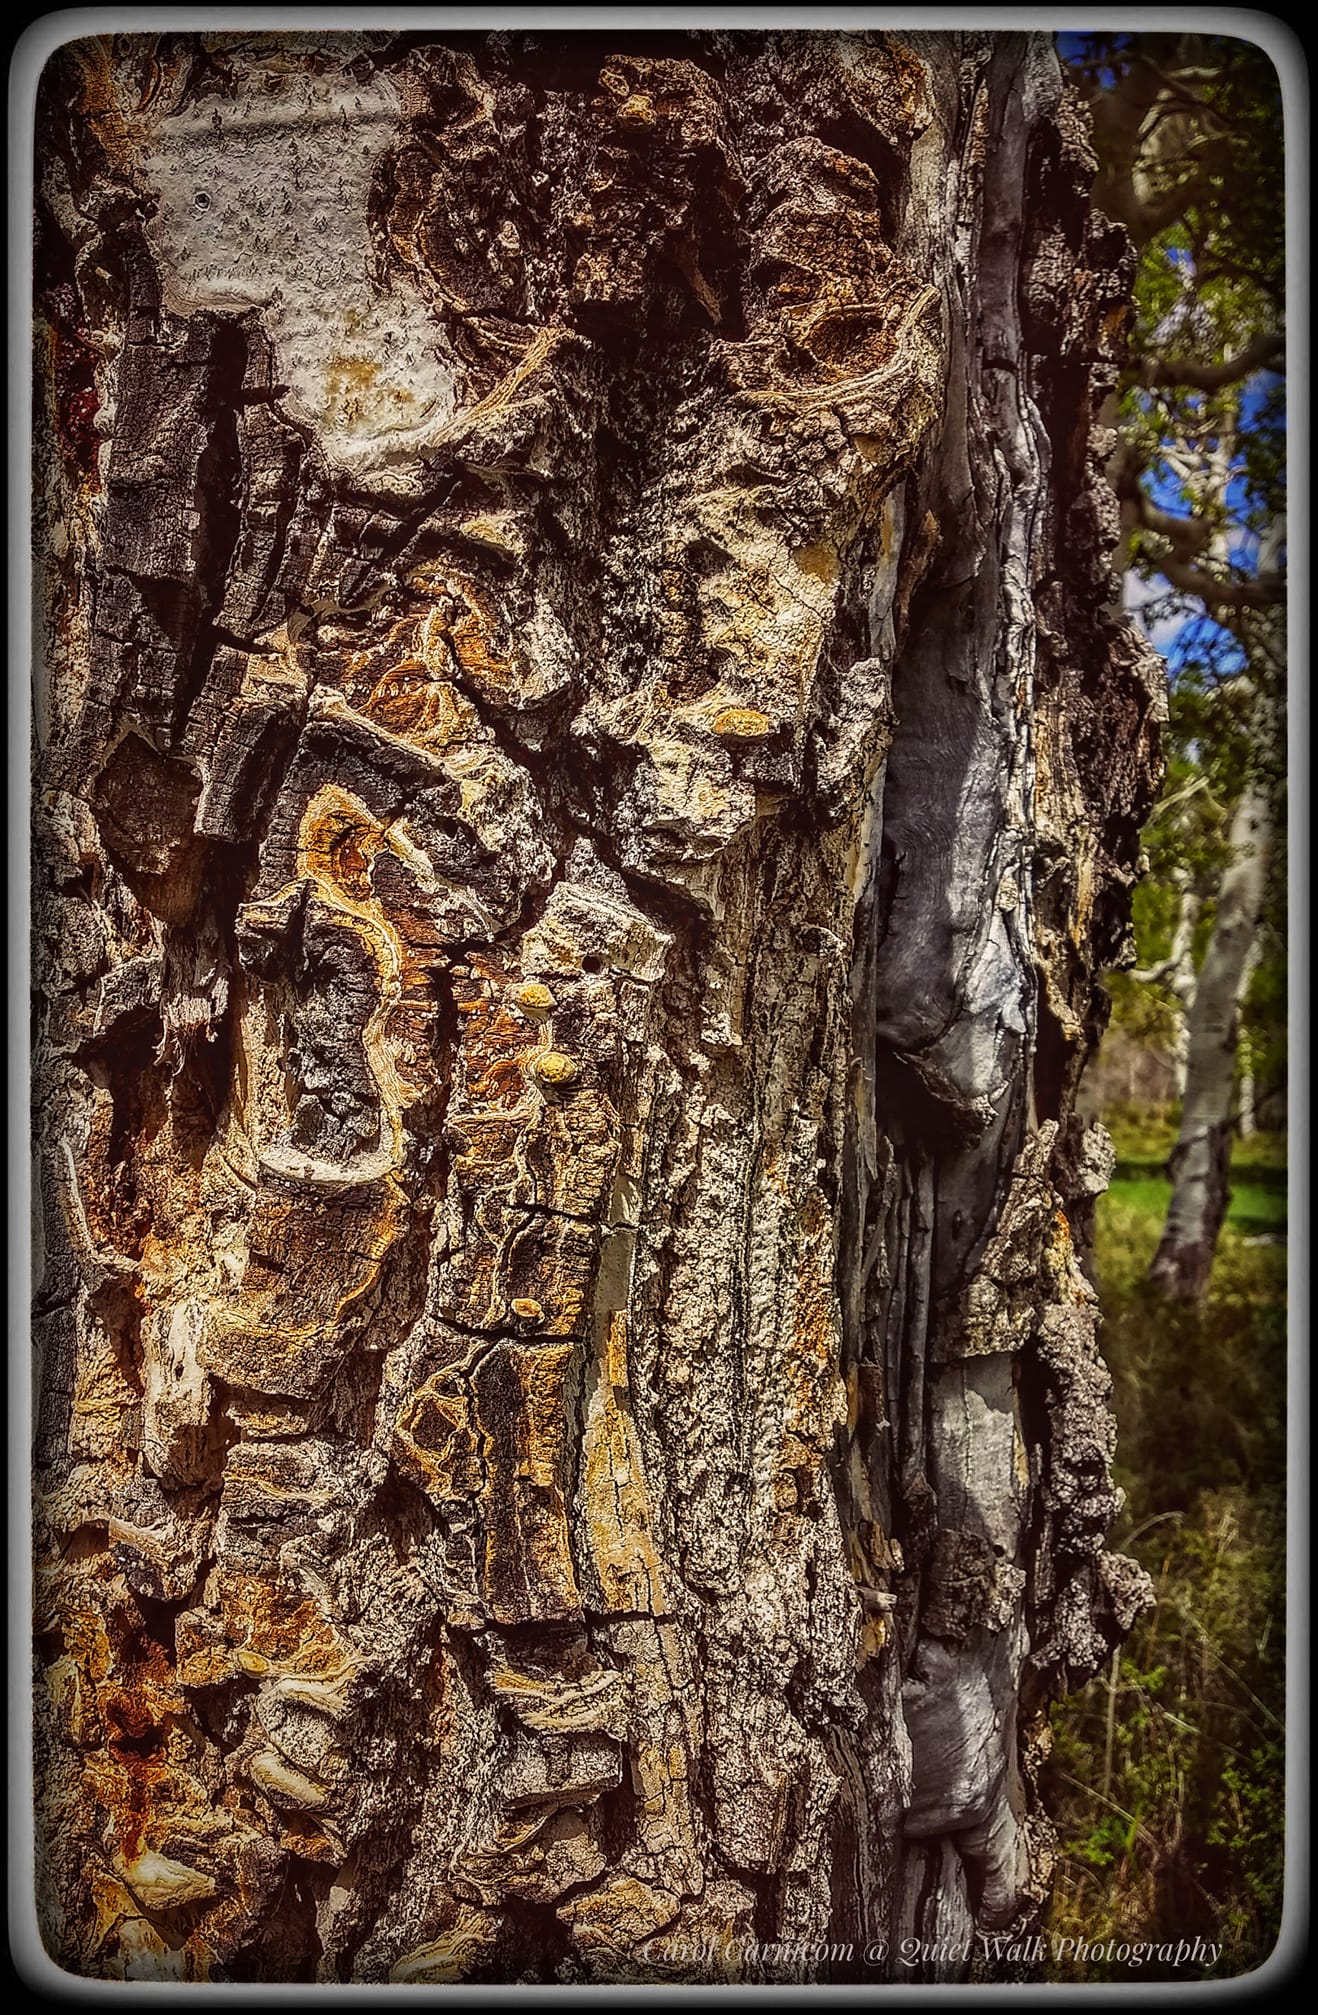 #highervibration Day 217 - Life is a mosaic, as this tree knows, not resisting but just doing its tree thing, day after day. Trees are good teachers.... Have you noticed?